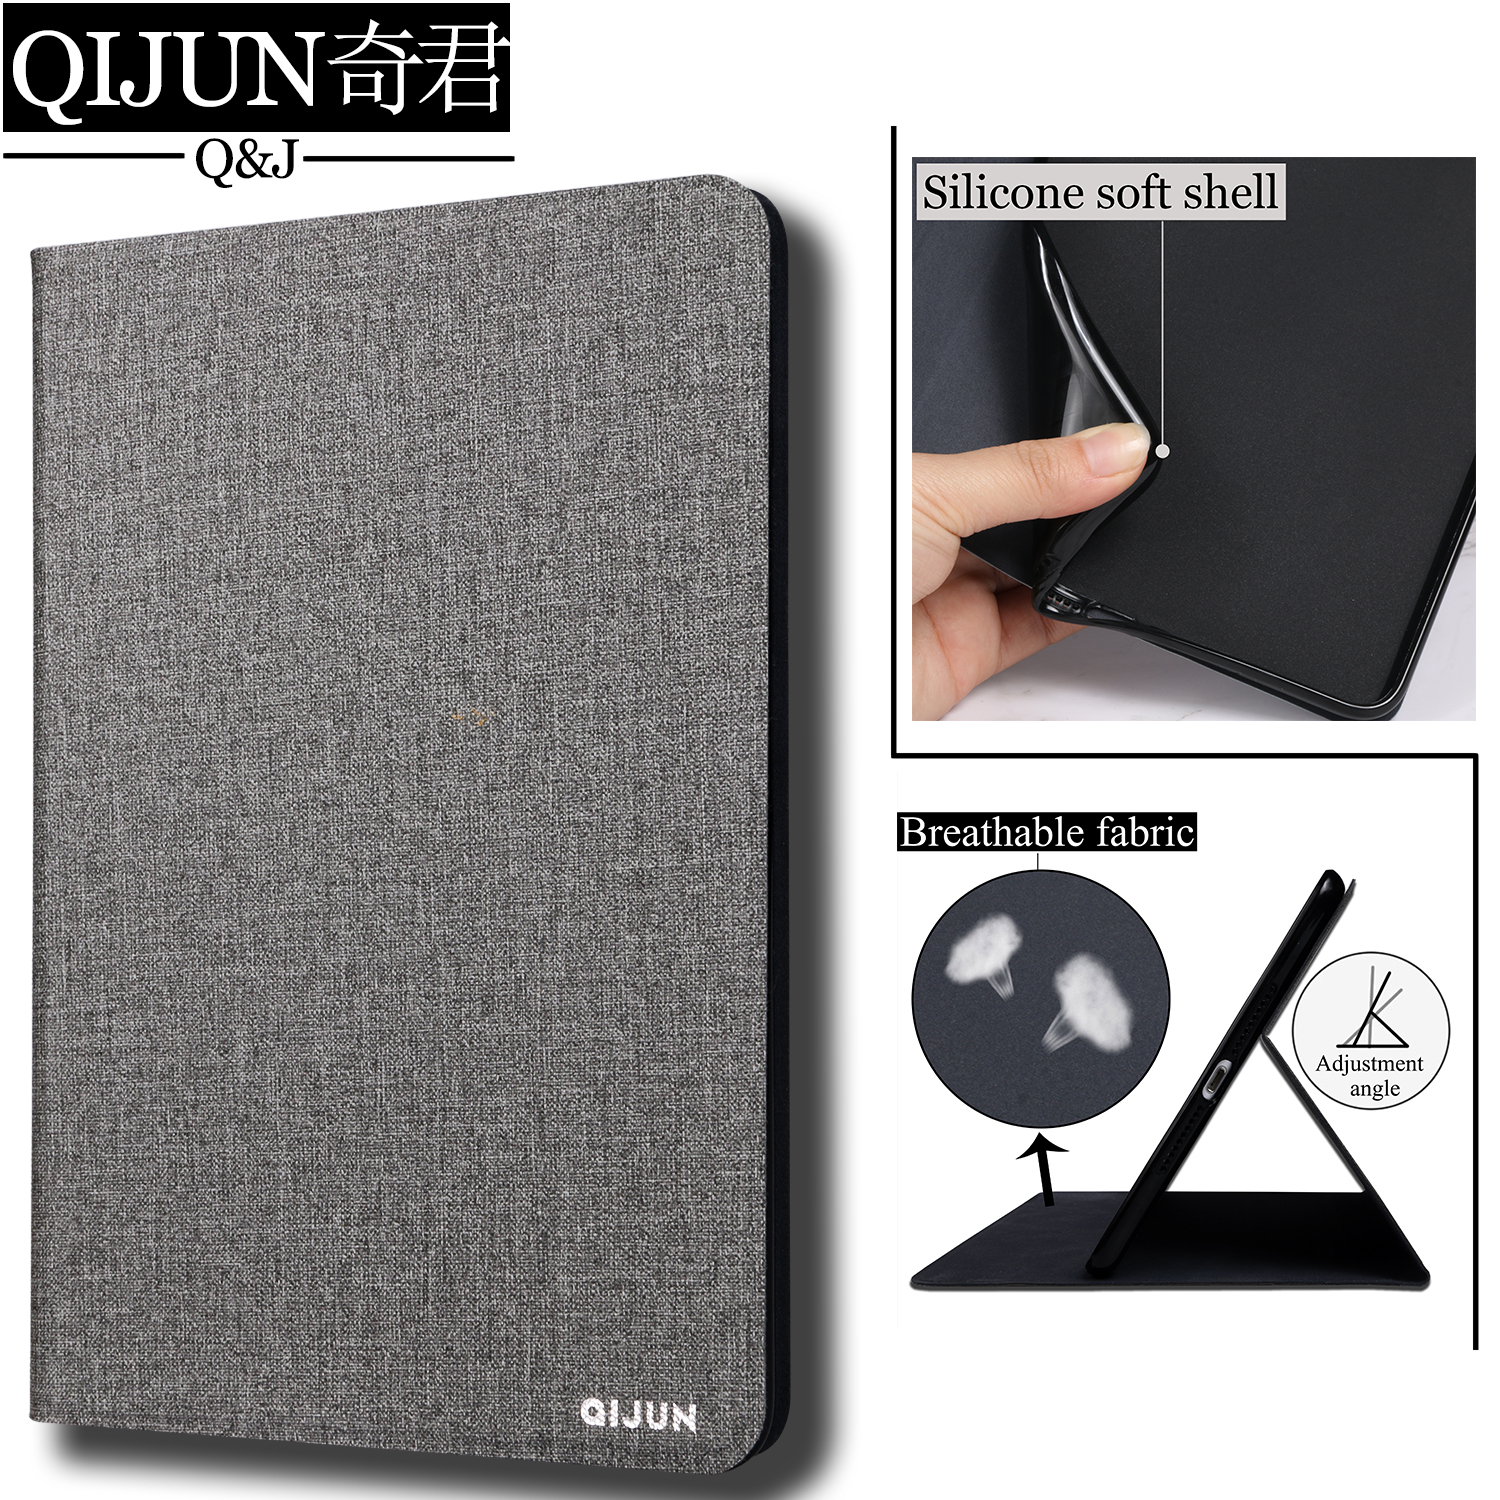 QIJUN tablet flip case for Huawei MediaPad M3 8.4 PU leather Stand Cover Silicone soft shell fundas coque capa for BTV-W09/DL09 image